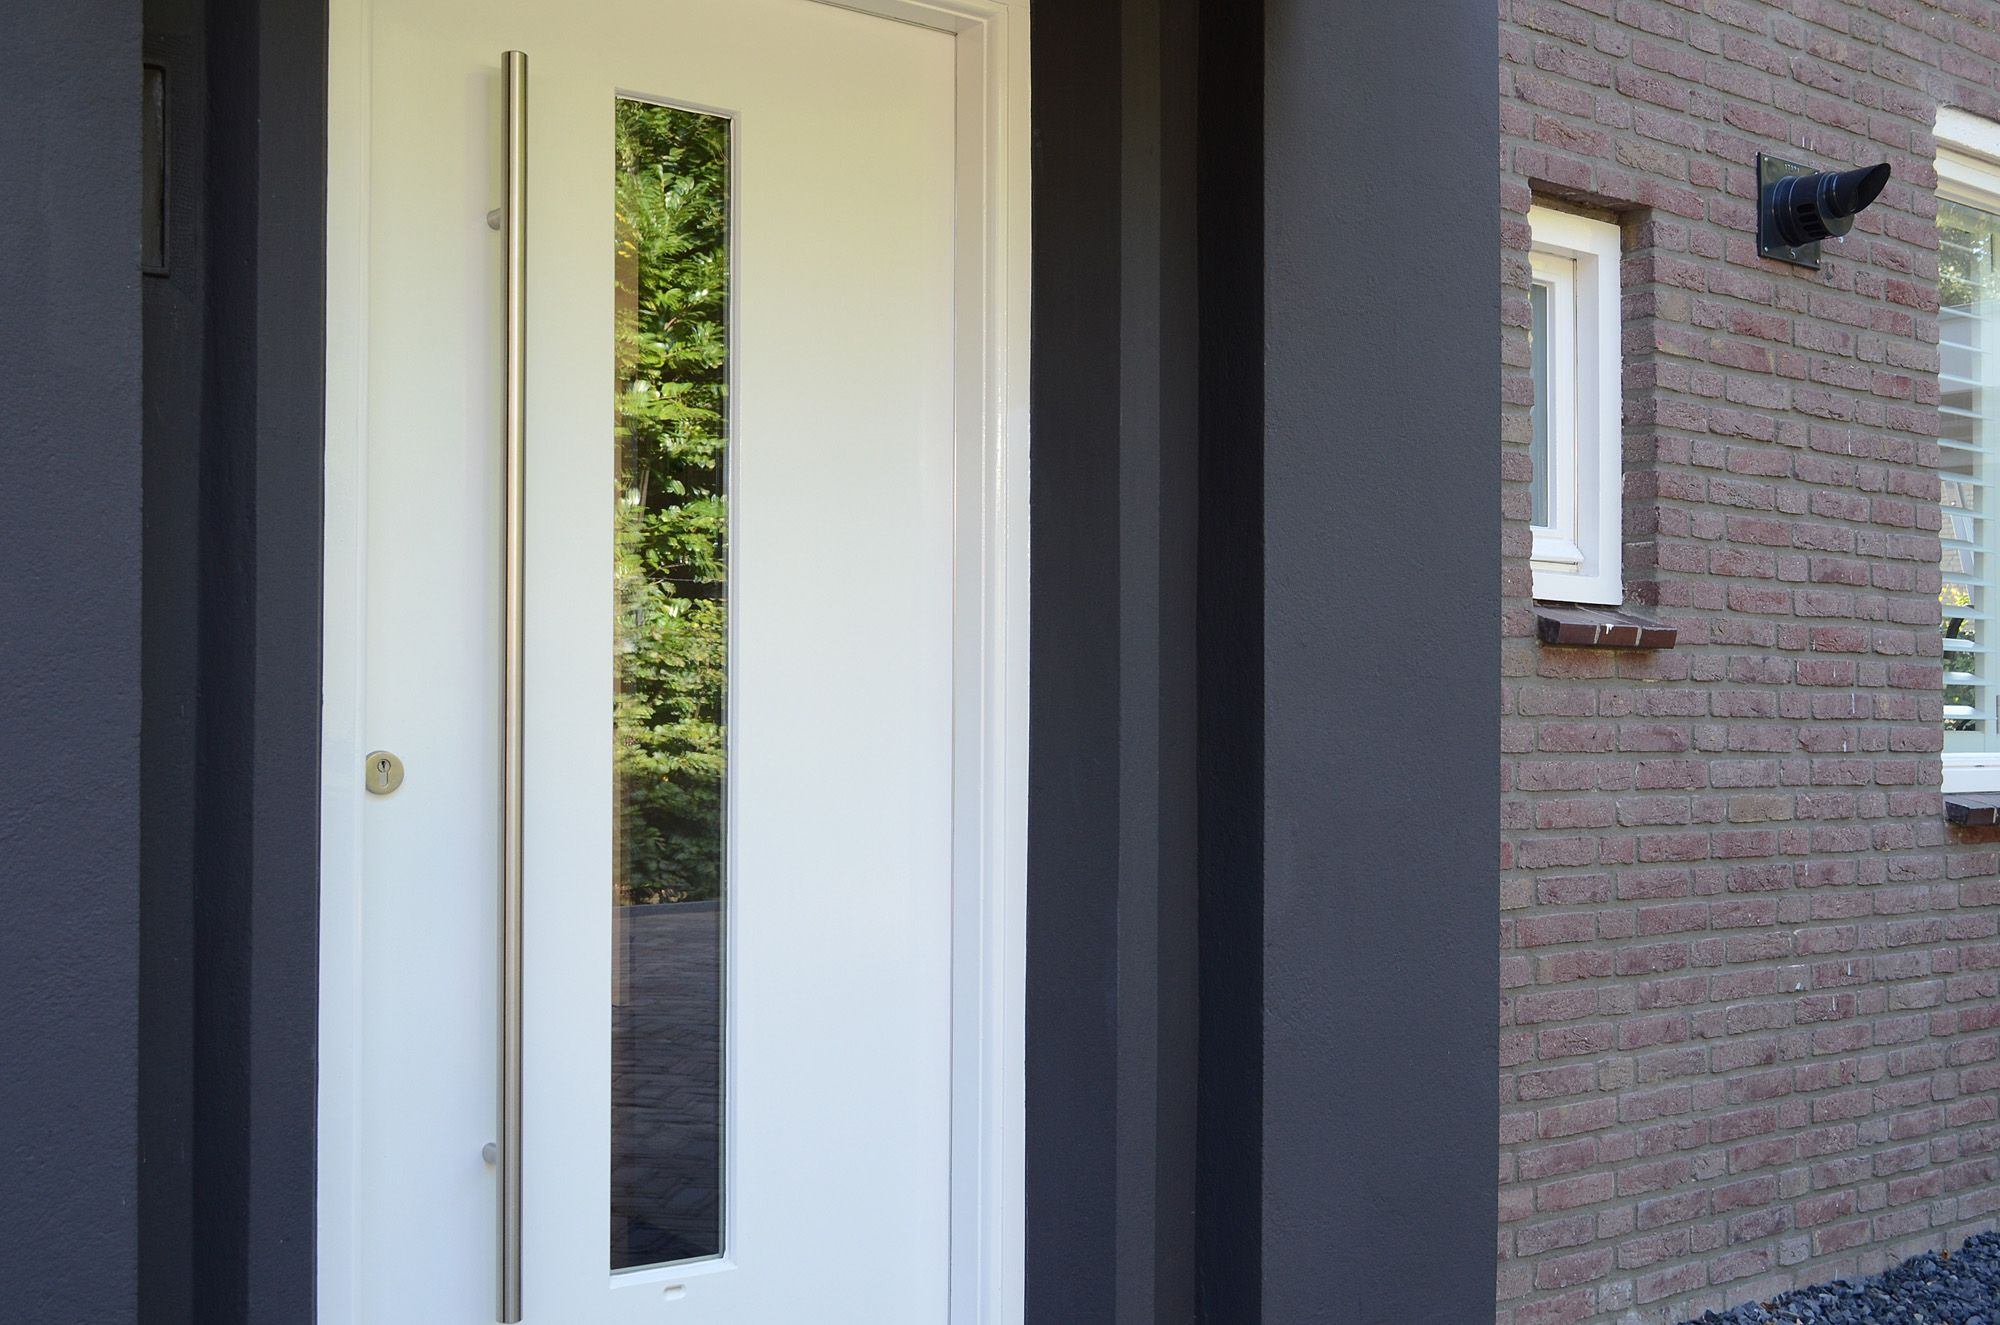 Handgreep Rvs Stainless Steel Handrail On Door Rvs Handgreep Voor De